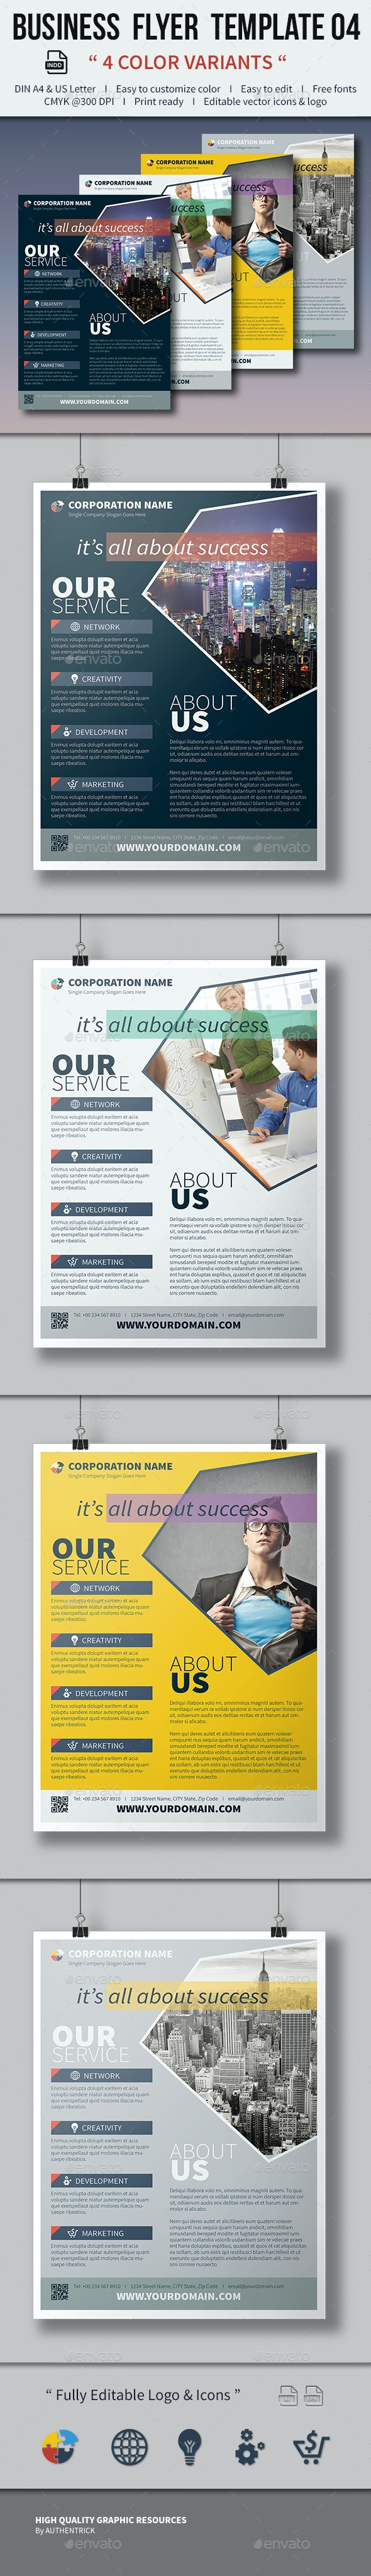 Business Flyer Template 04 - Corporate Flyers